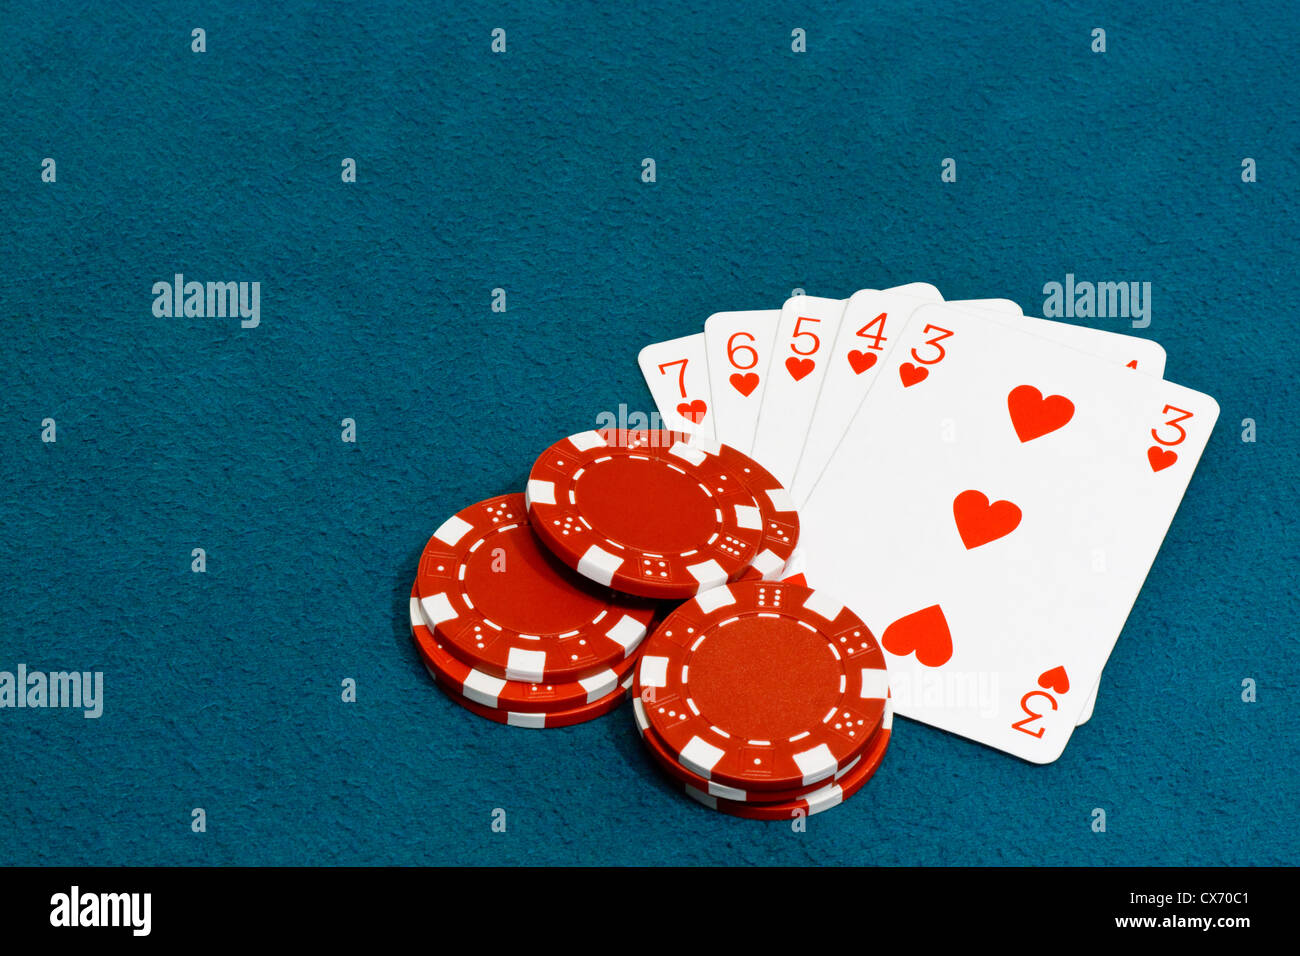 A straight flush a Winning hand in the card game of Poker - Stock Image